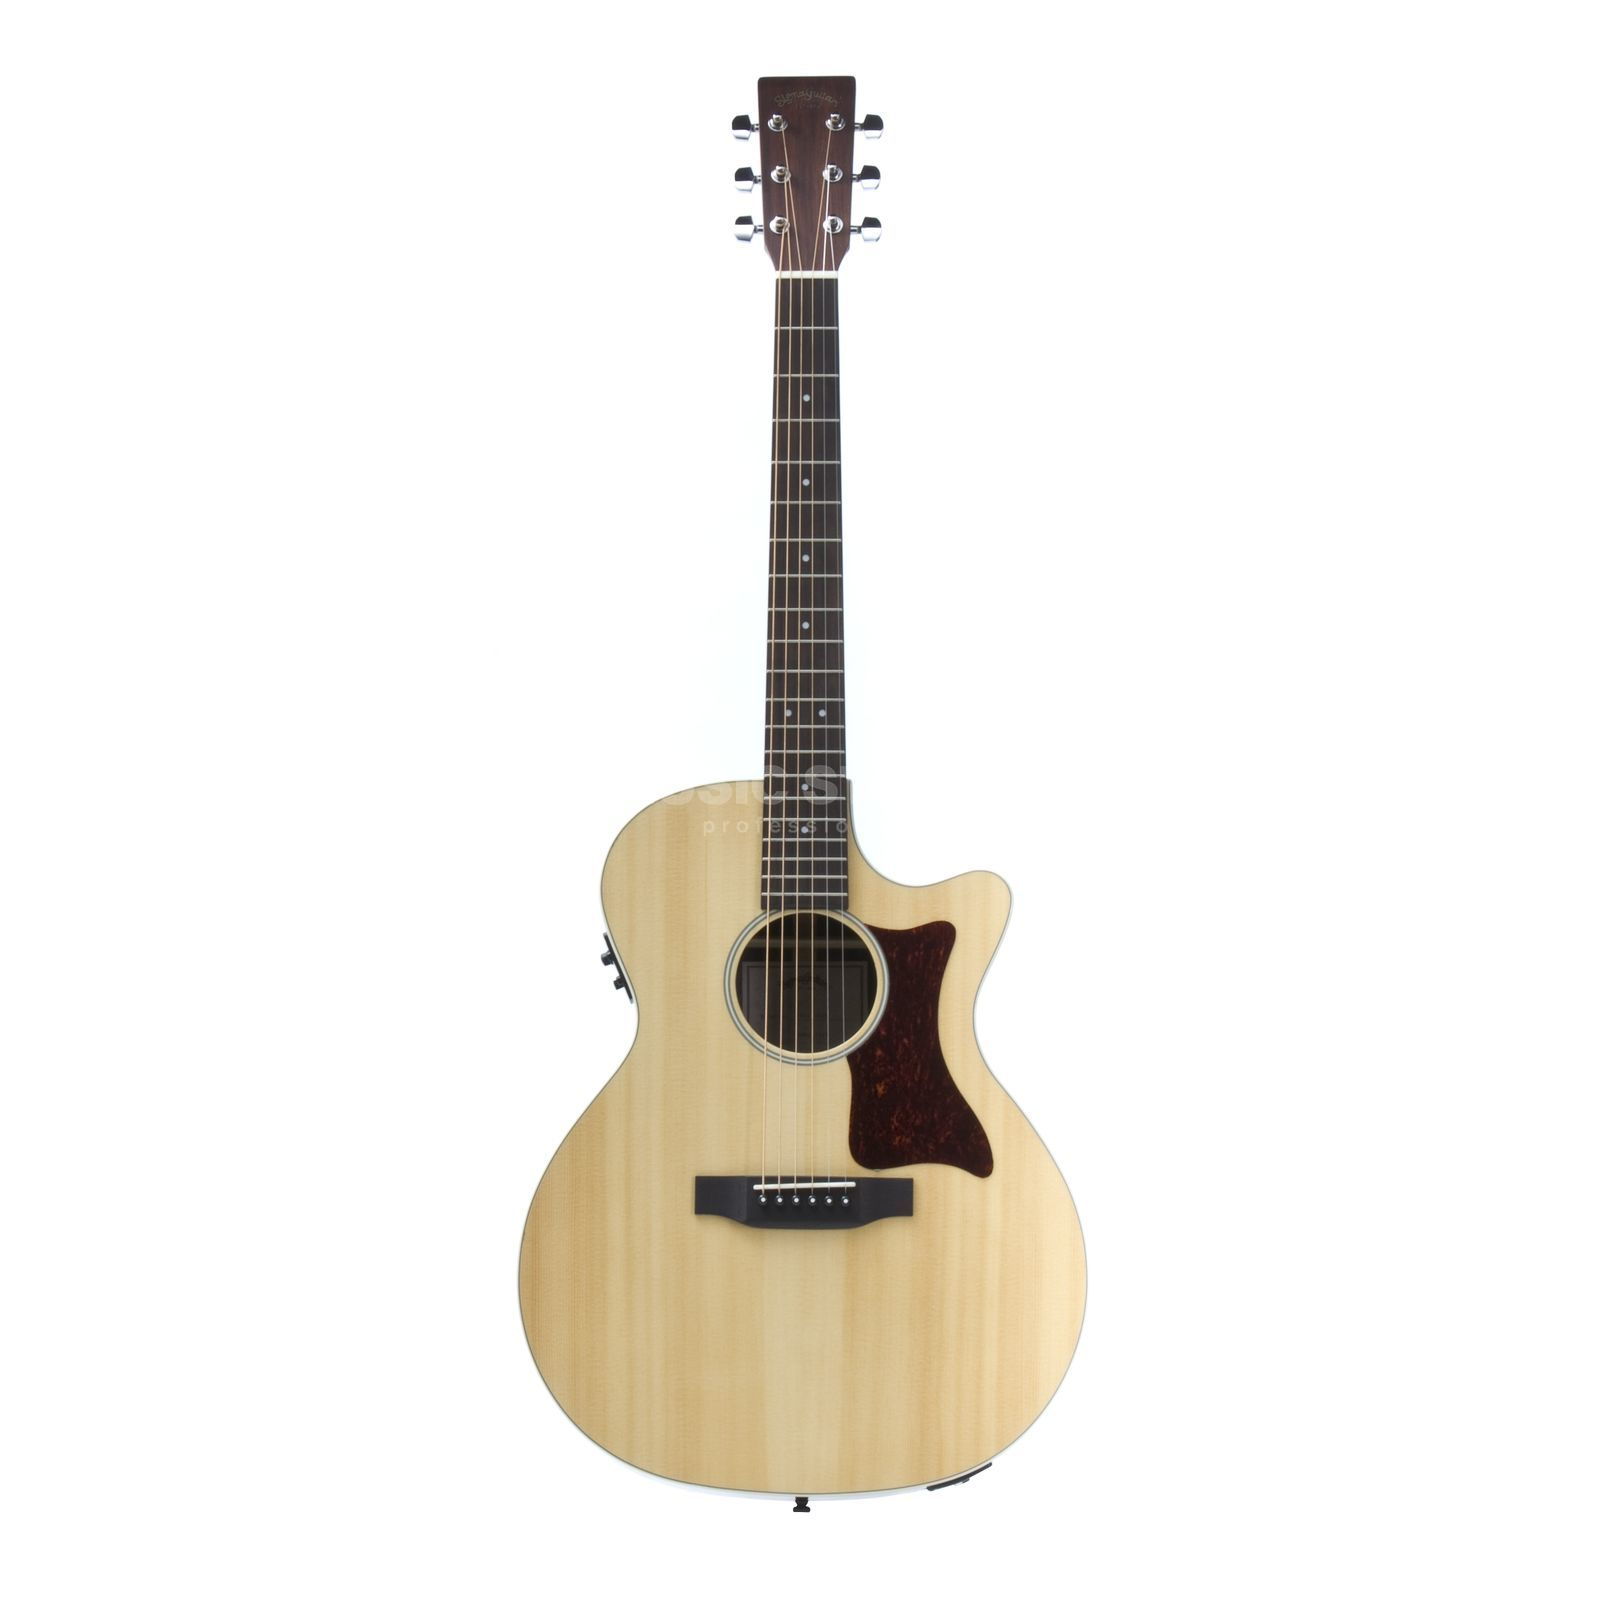 Sigma Guitars GMRC-1 STE Music Store Edition Natural Highgloss Produktbild